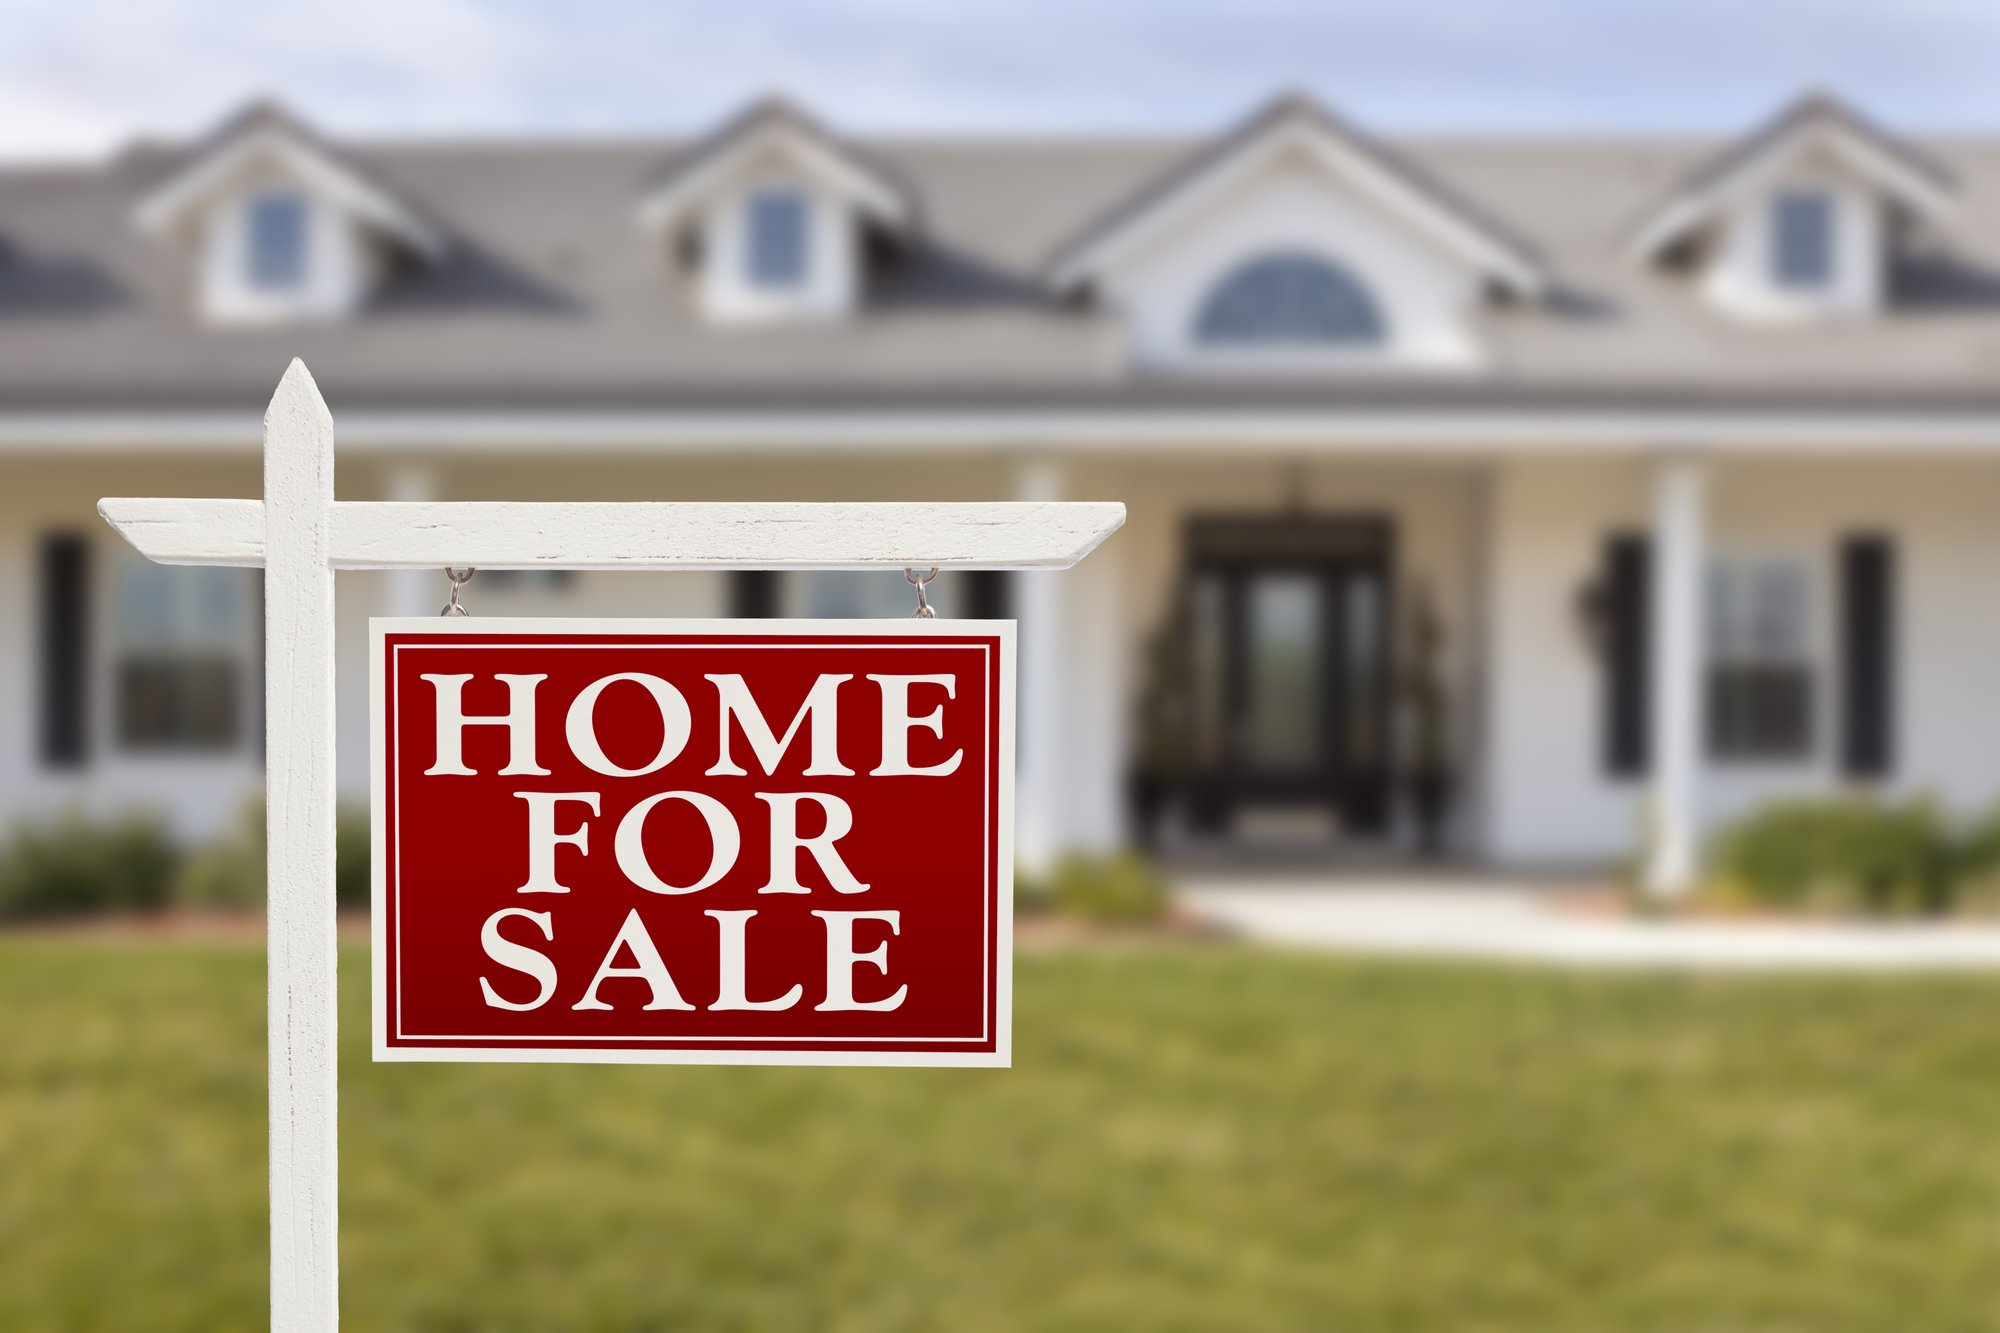 Do I need a pest inspection before buying a house?